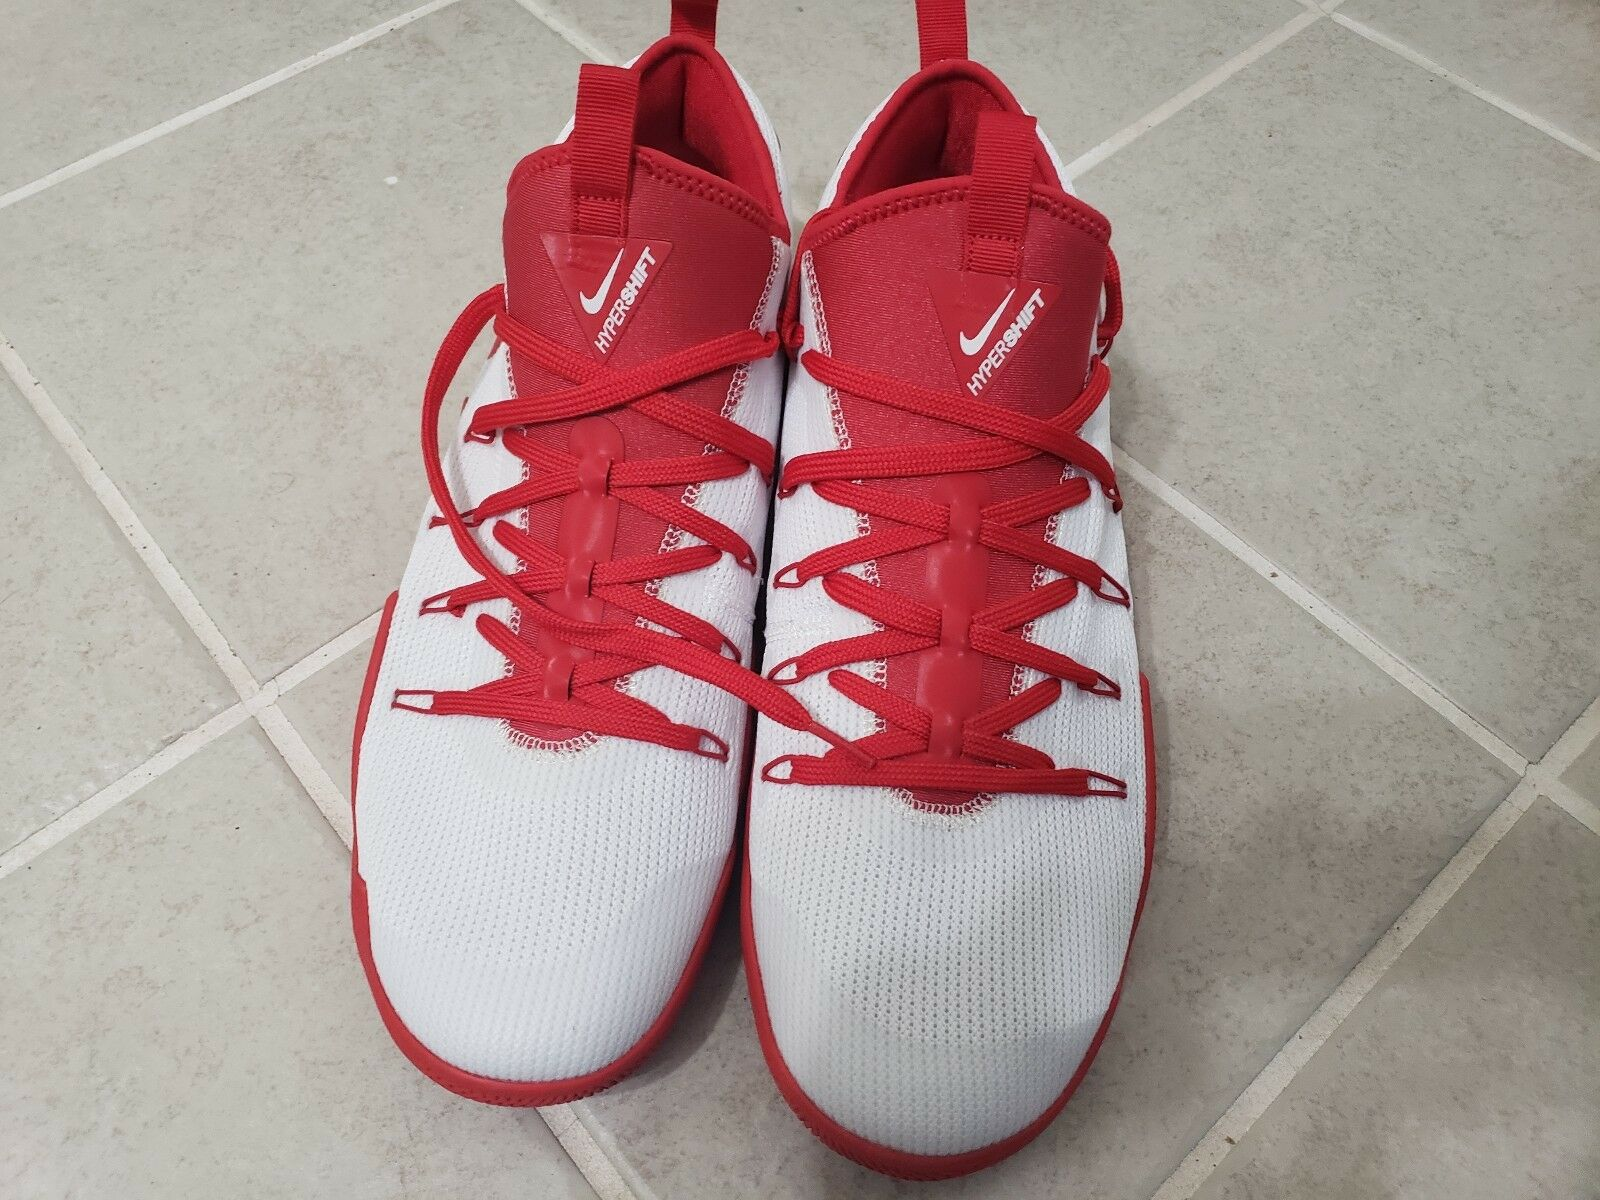 NEW Nike Hypershift Red/White Men's Size 15.5 Same Day Shipping